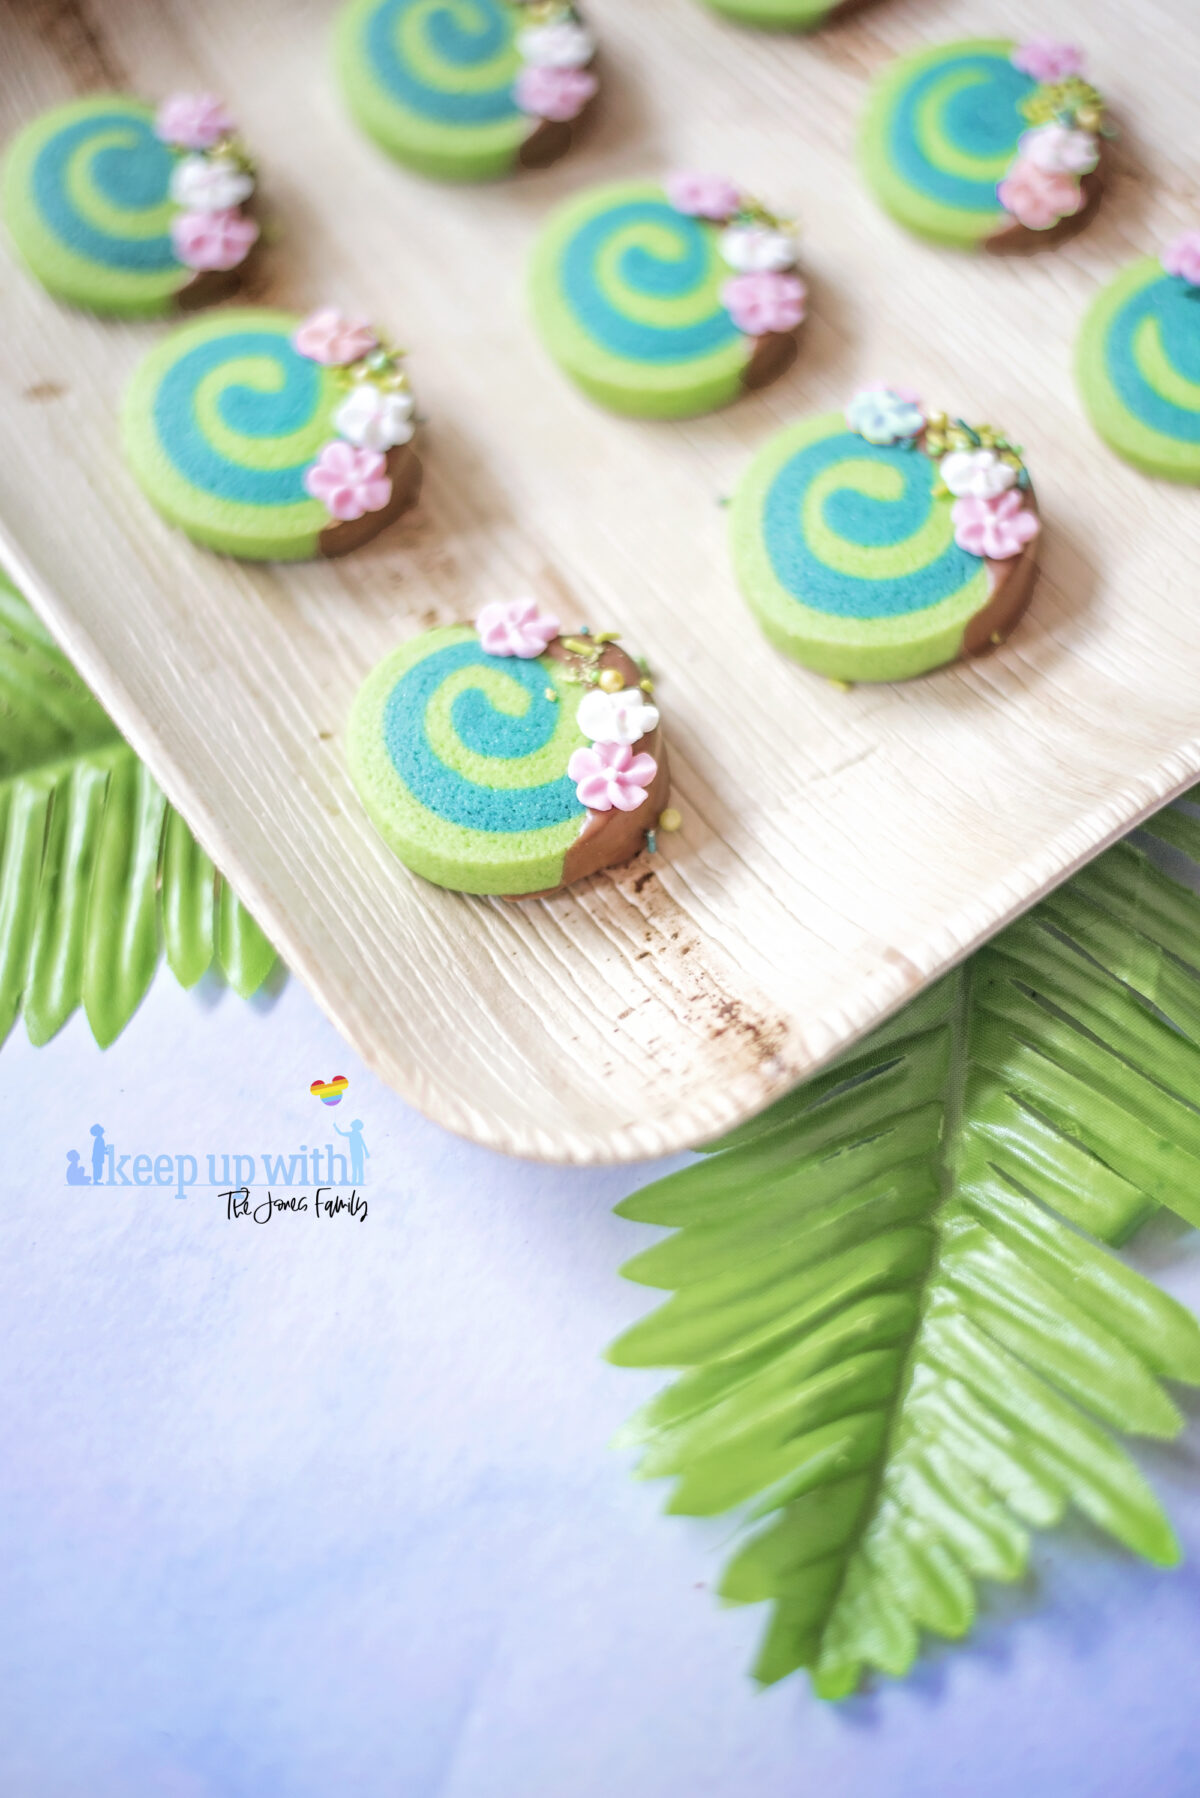 Image shows how to make Disney's Moana Heart of Te Fiti Biscuits, a swirl of bright and dark green, dipped slightly in milk chocolate and embellished with sugar blossom flowers and green sprinkles.  They are set on a bamboo plate with a fern underneath.  Image by keep up with the jones family.